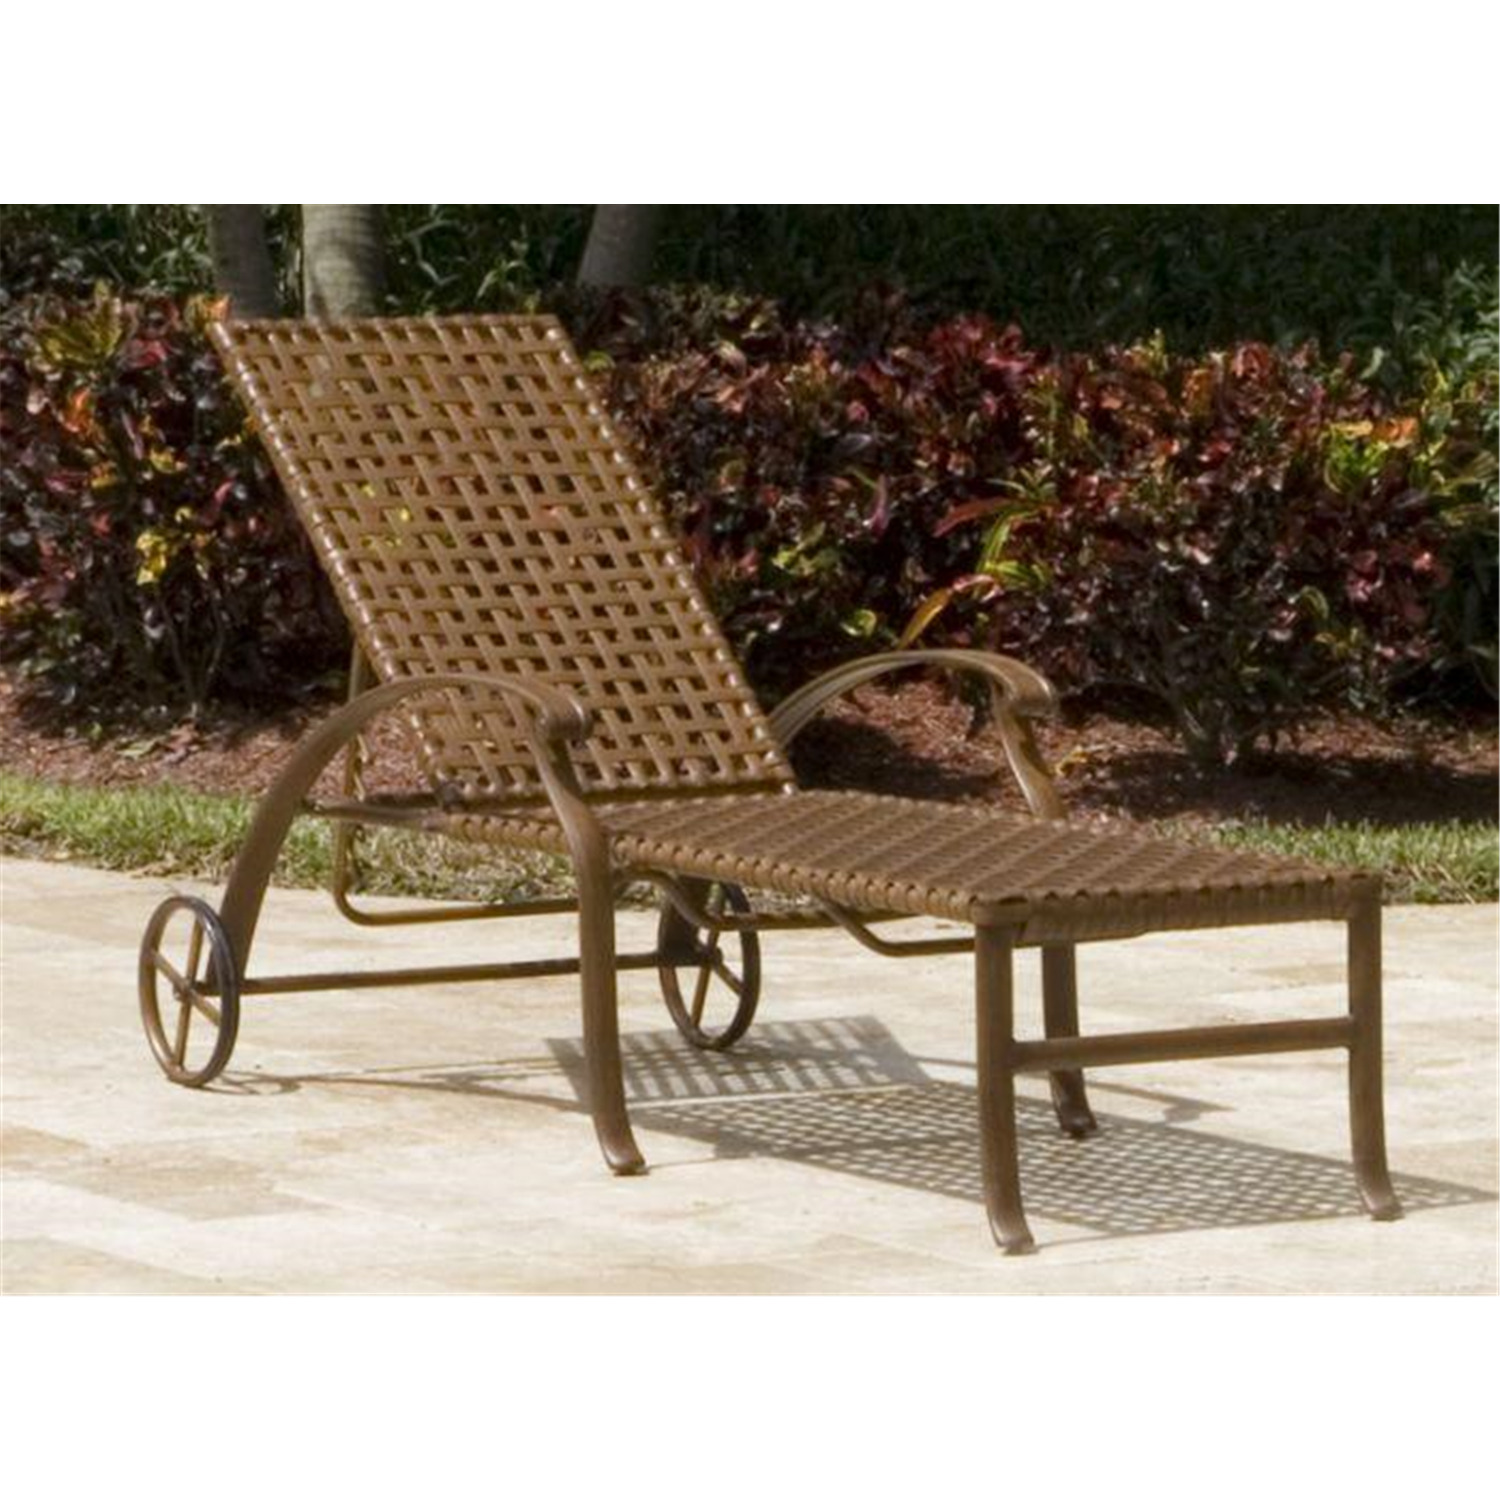 Hospitality Rattan Patio Chaise Lounge With Wheels By OJ Commerce 910 1252 BR